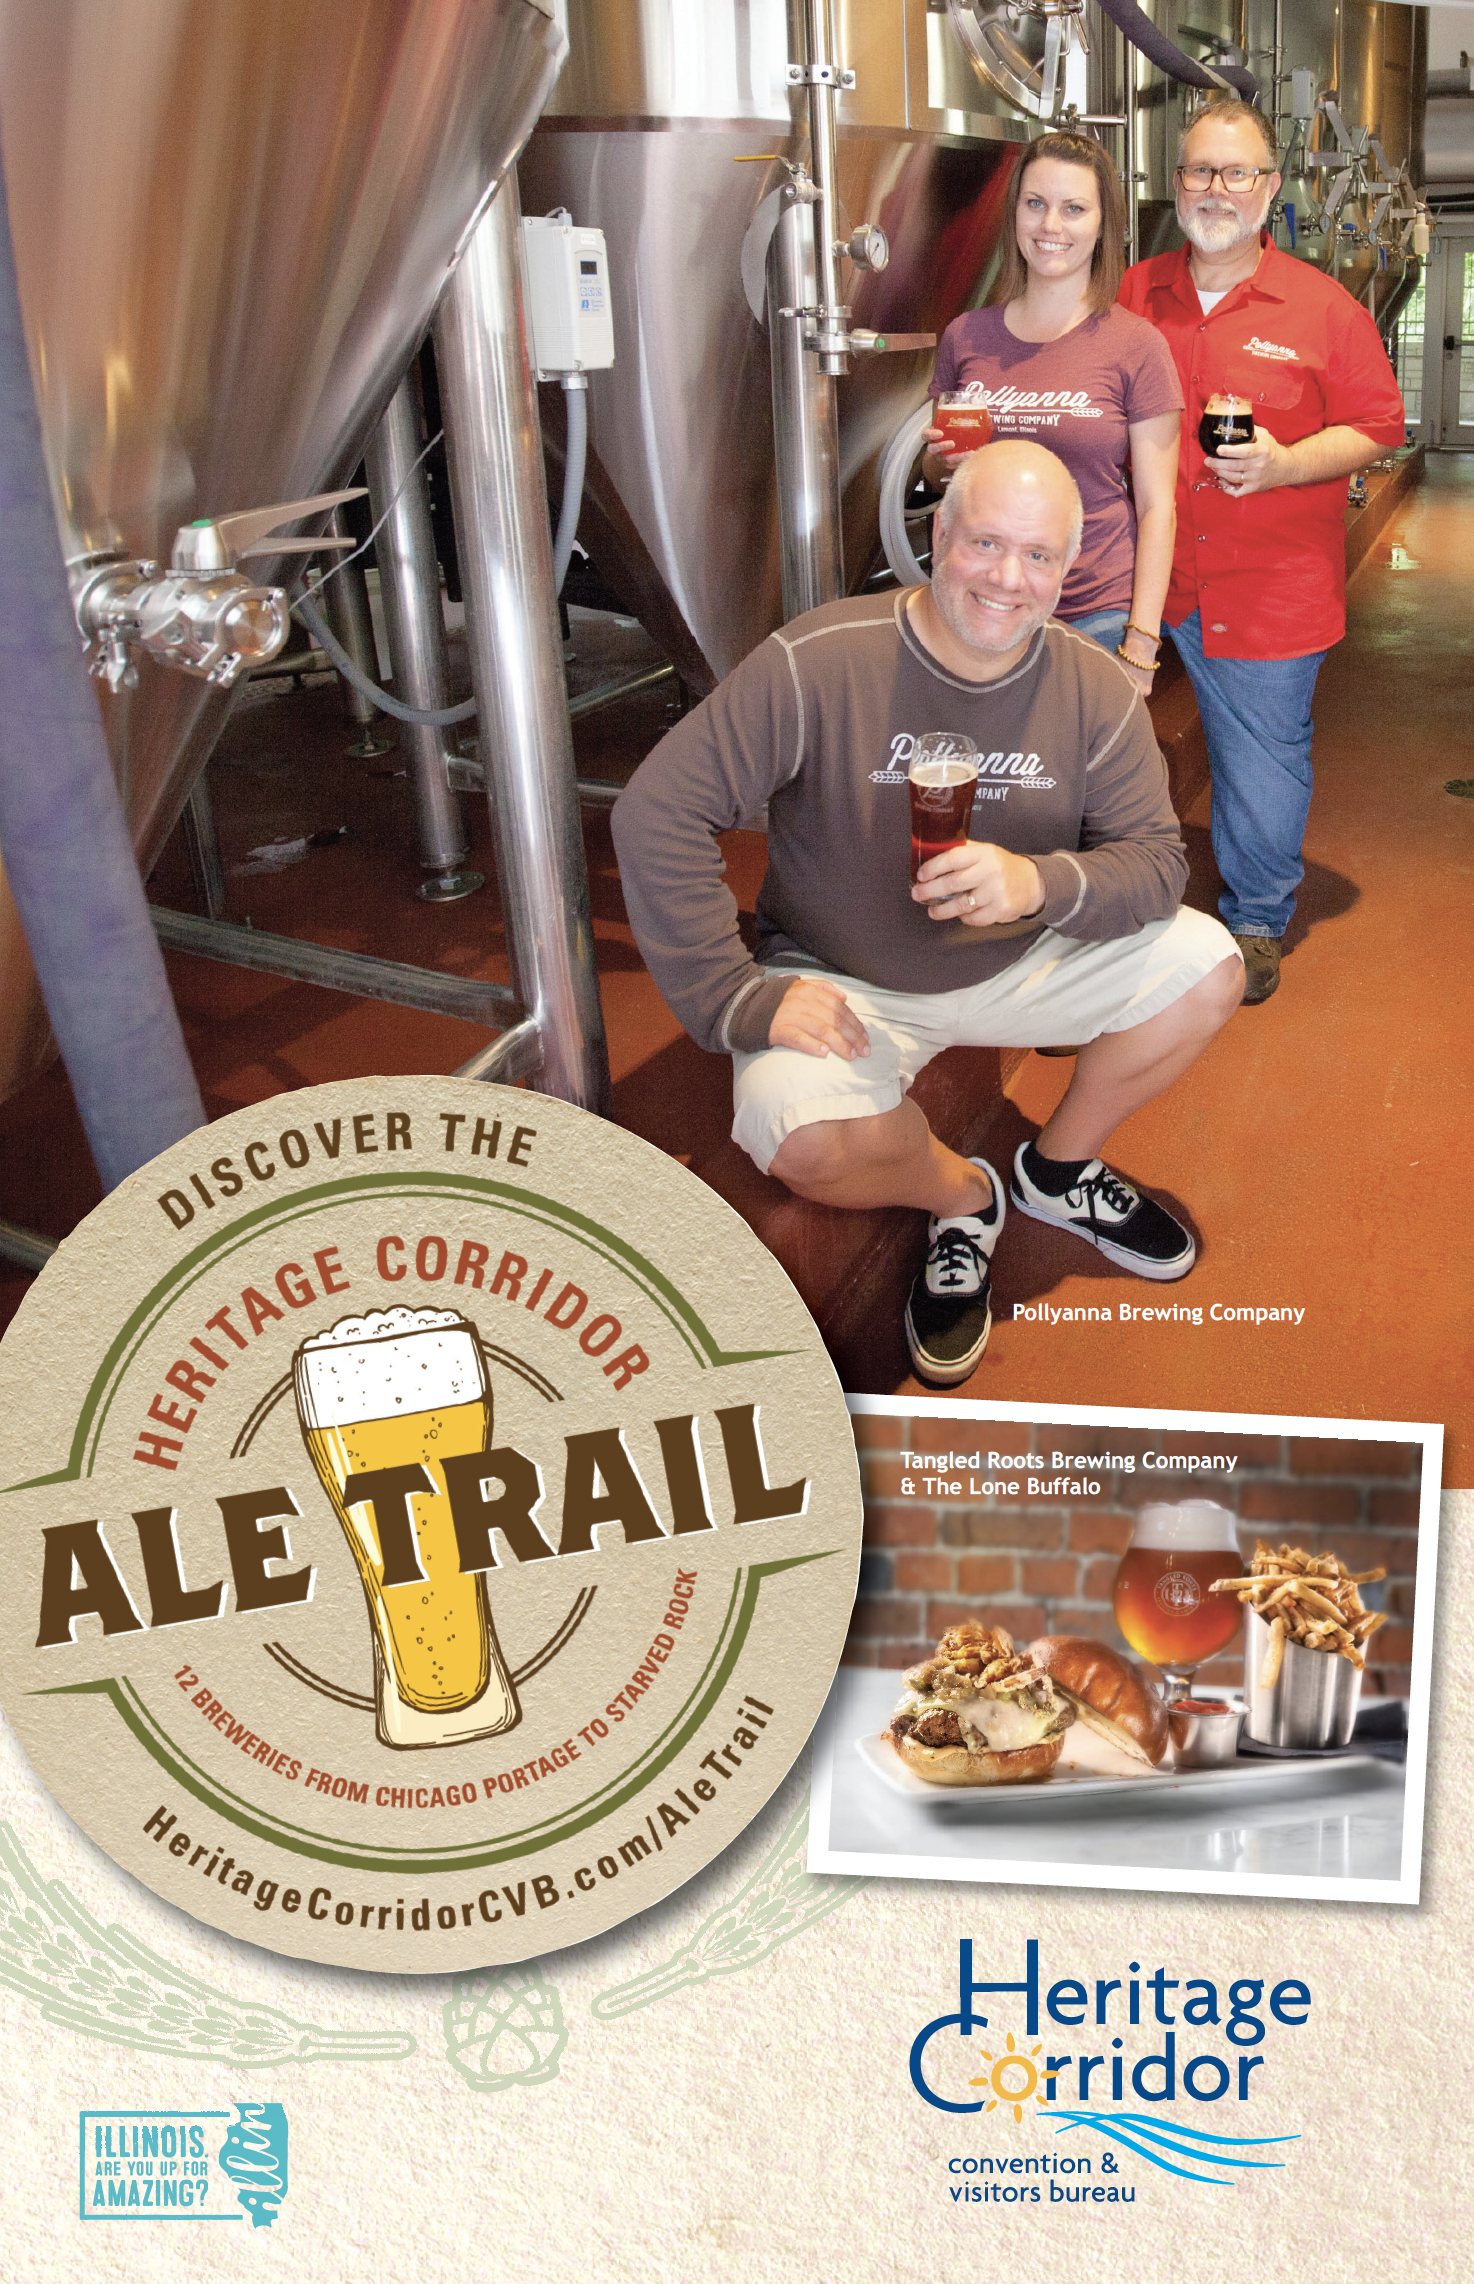 Advertising for the Ale Trail, featuring Pollyanna Brewing Company and Tangled Roots Brewing Company